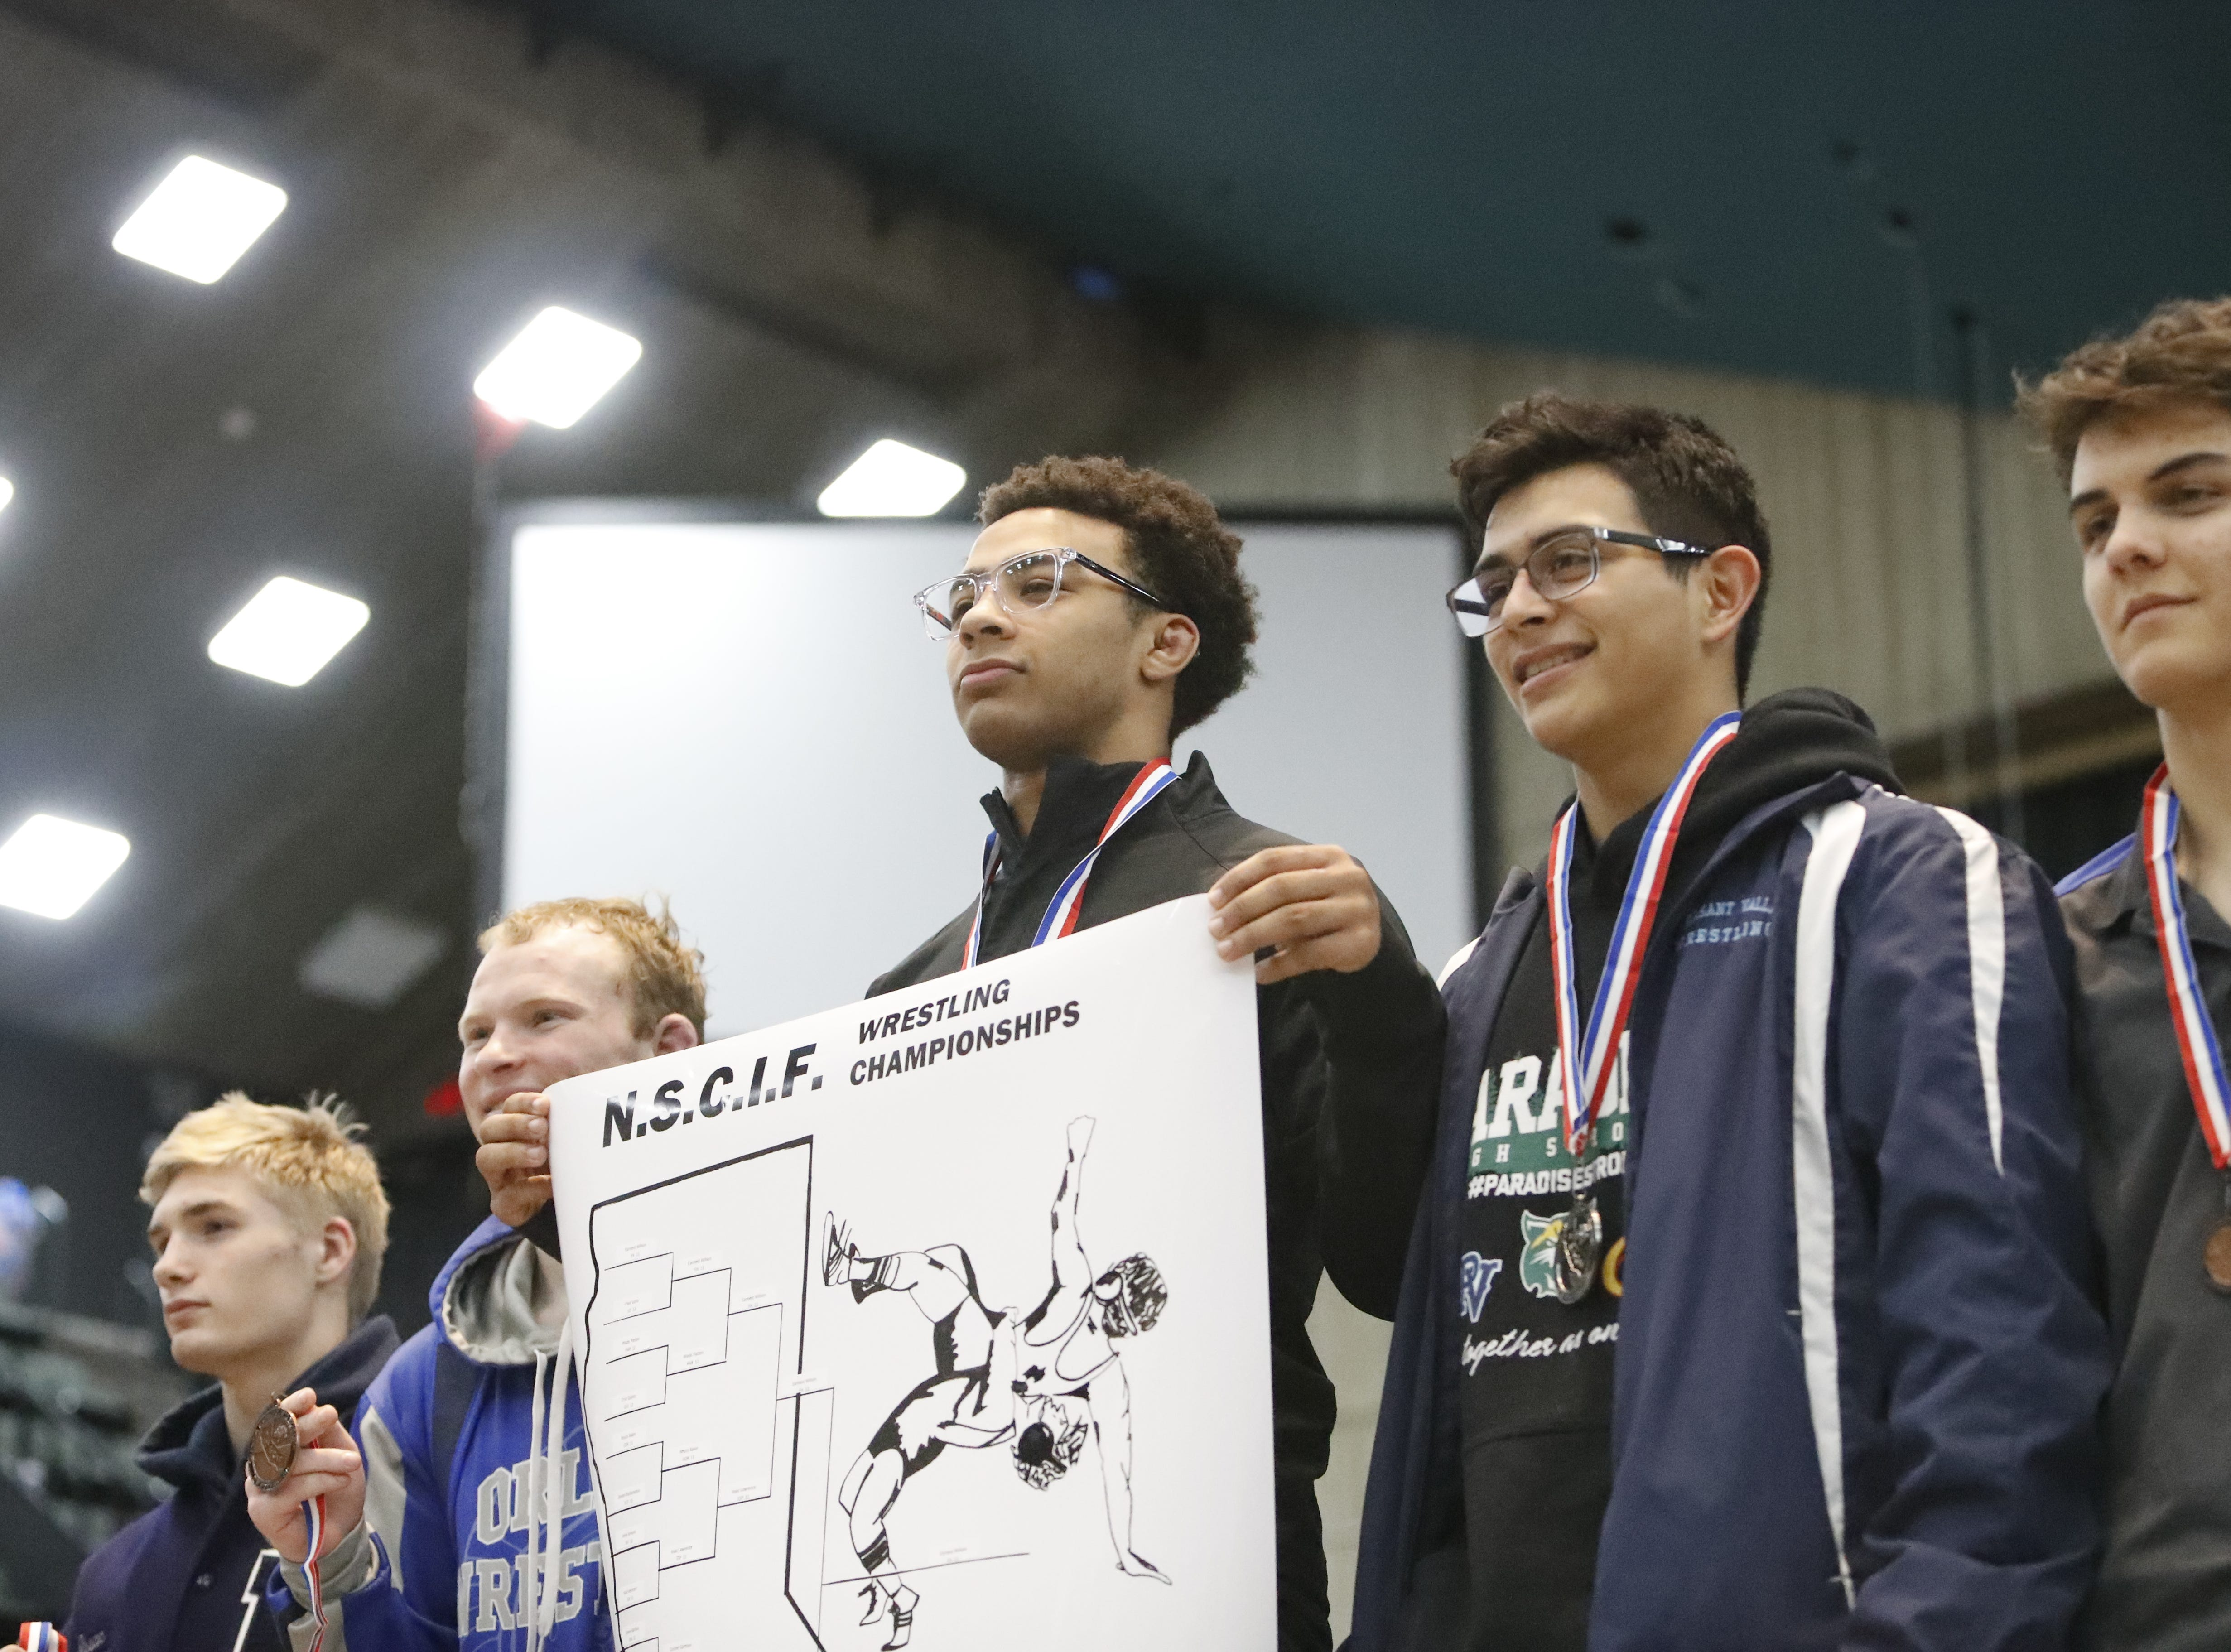 Foothill's Earnest Wilson poses after winning the 145-pound Northern Section championship on Friday, Feb. 15, at the Redding Civic Auditorium.